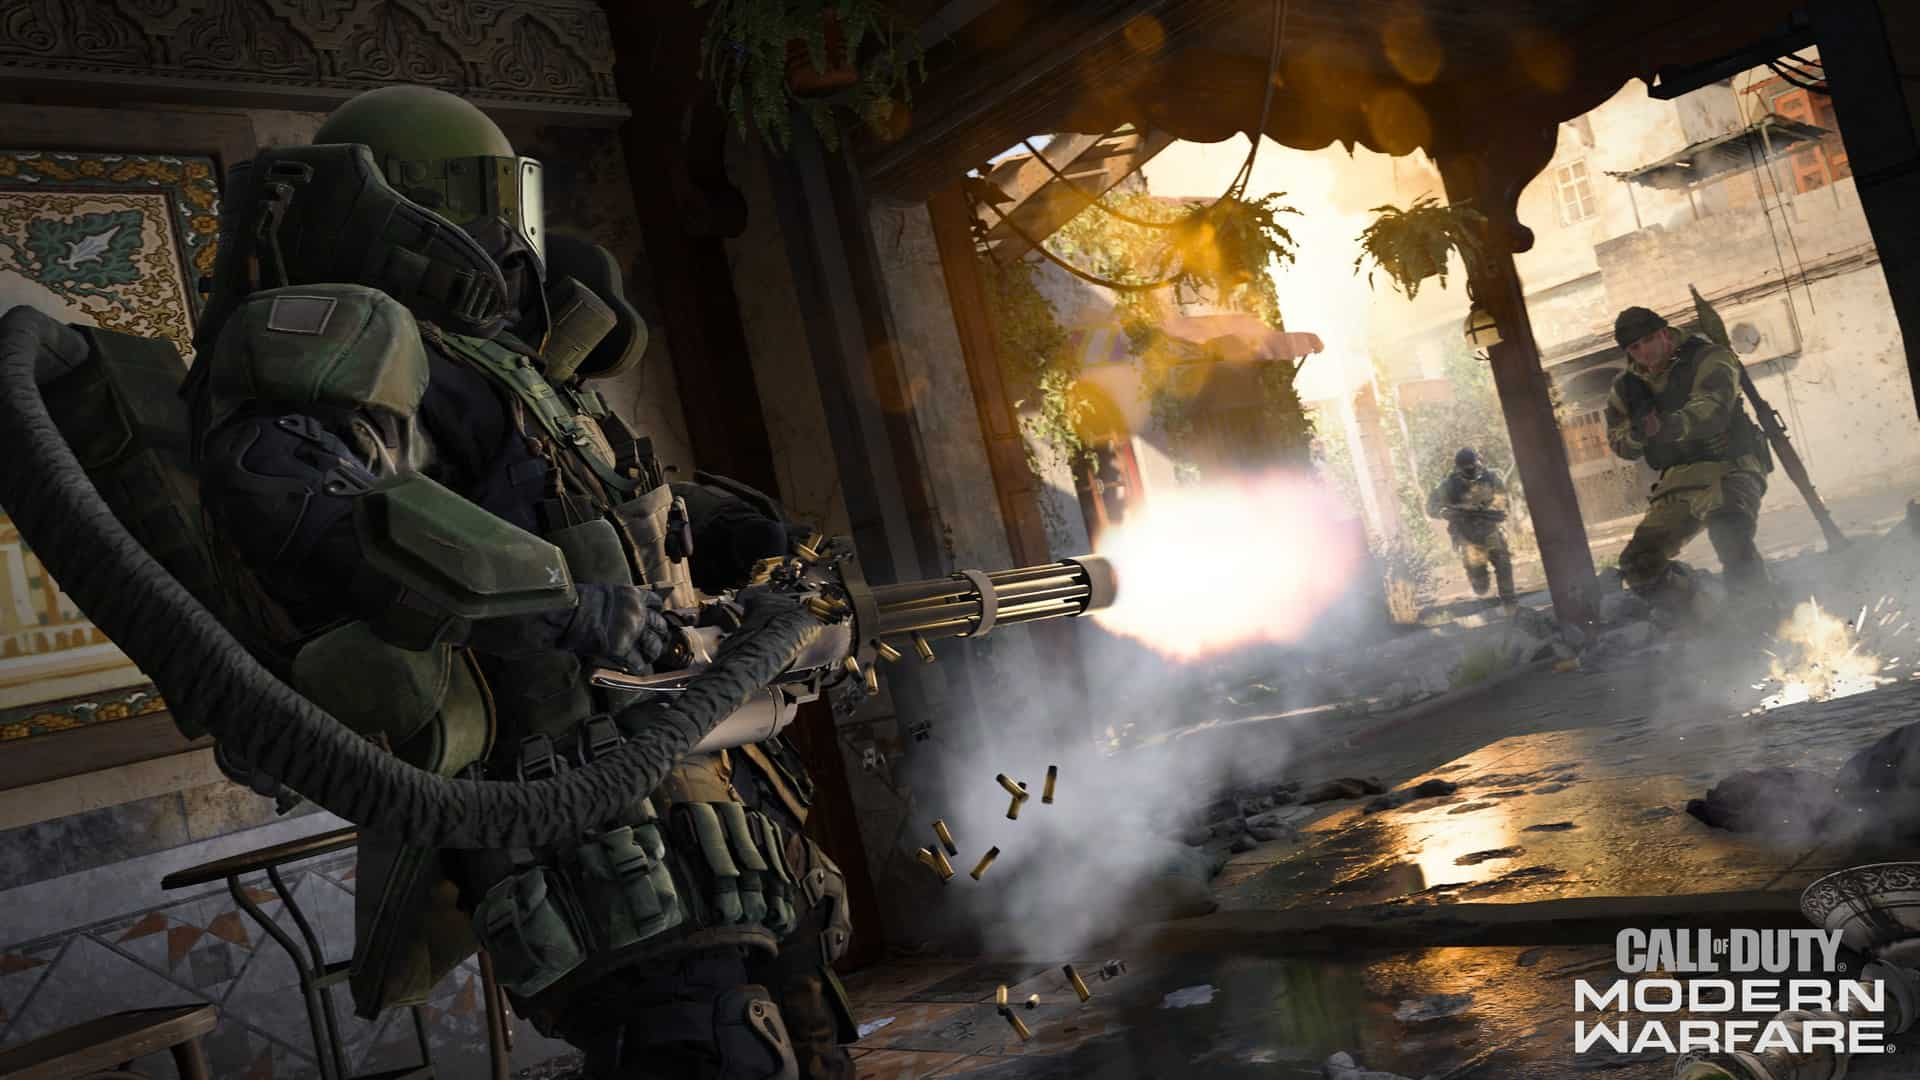 Call of Duty: Modern Warfare Introduces The Ultimate Multiplayer Playground